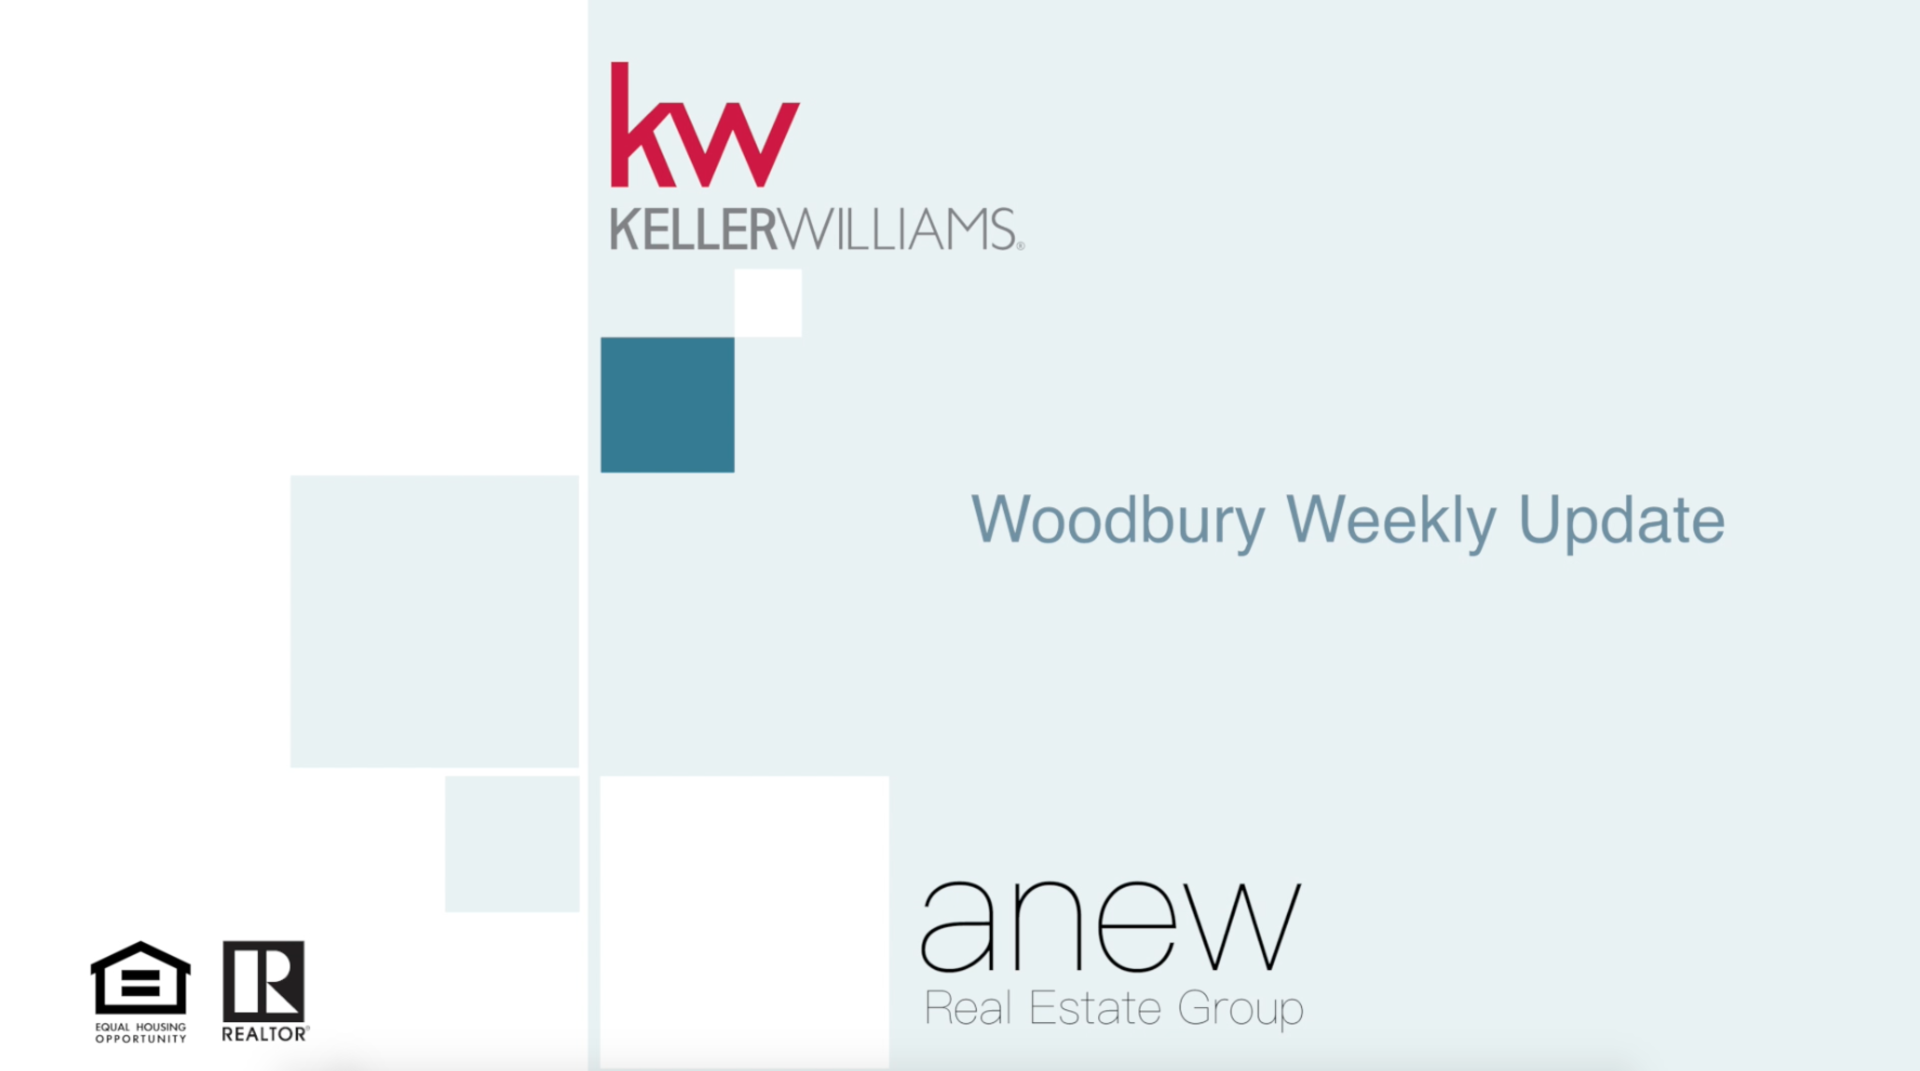 Woodbury Weekly Update for June 4th, 2018.